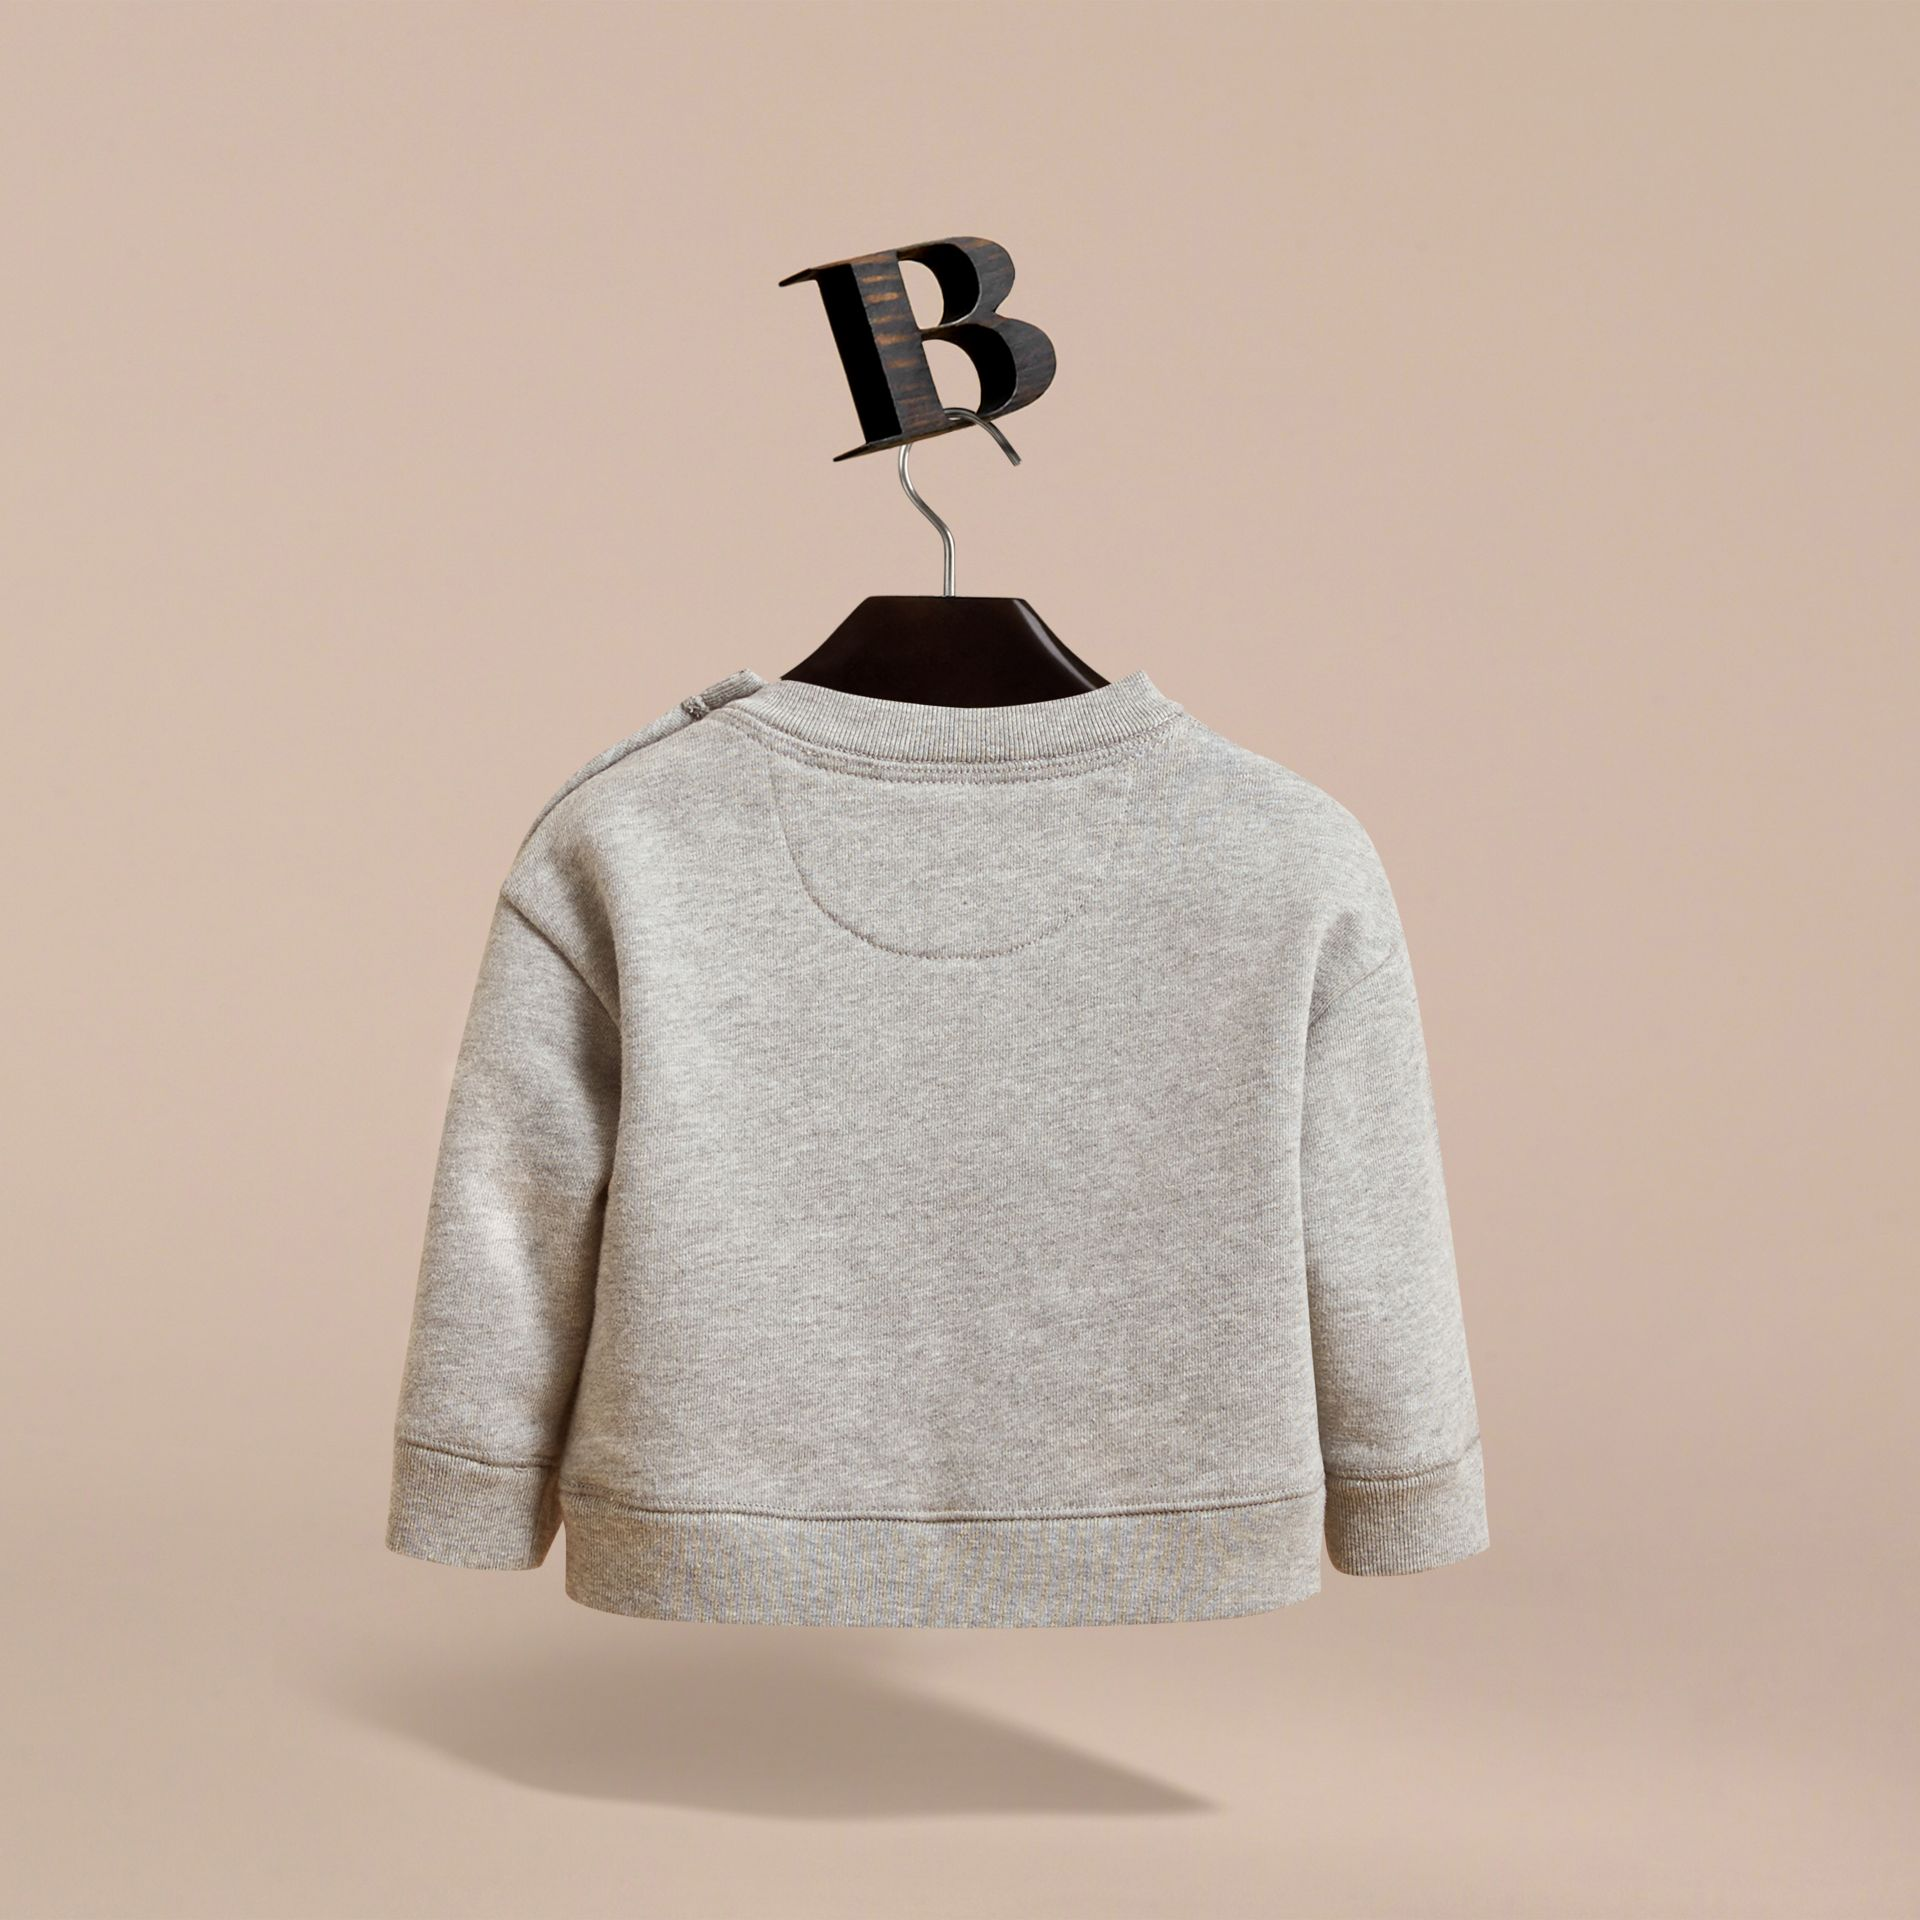 Birds of a Feather Motif Cotton Sweatshirt in Grey Melange | Burberry - gallery image 4